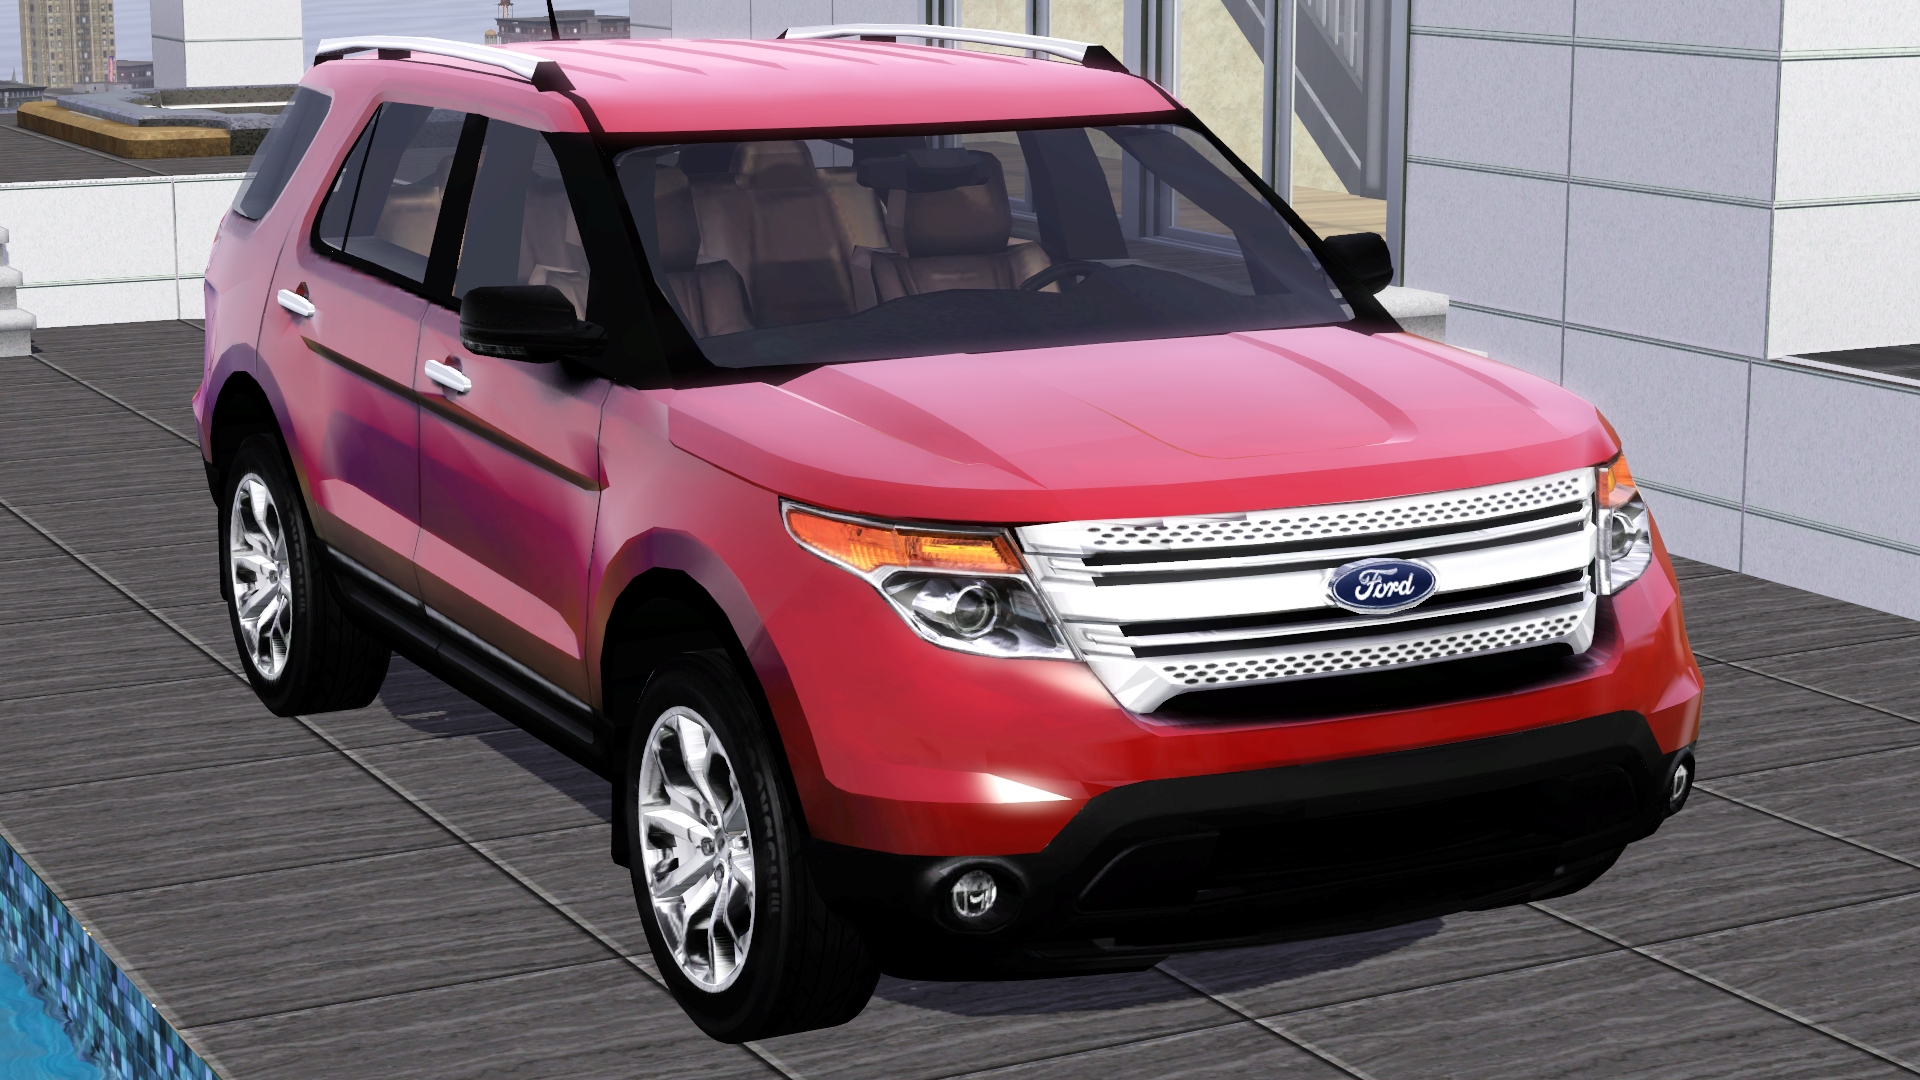 2012 Ford Explorer by Fresh-Prince